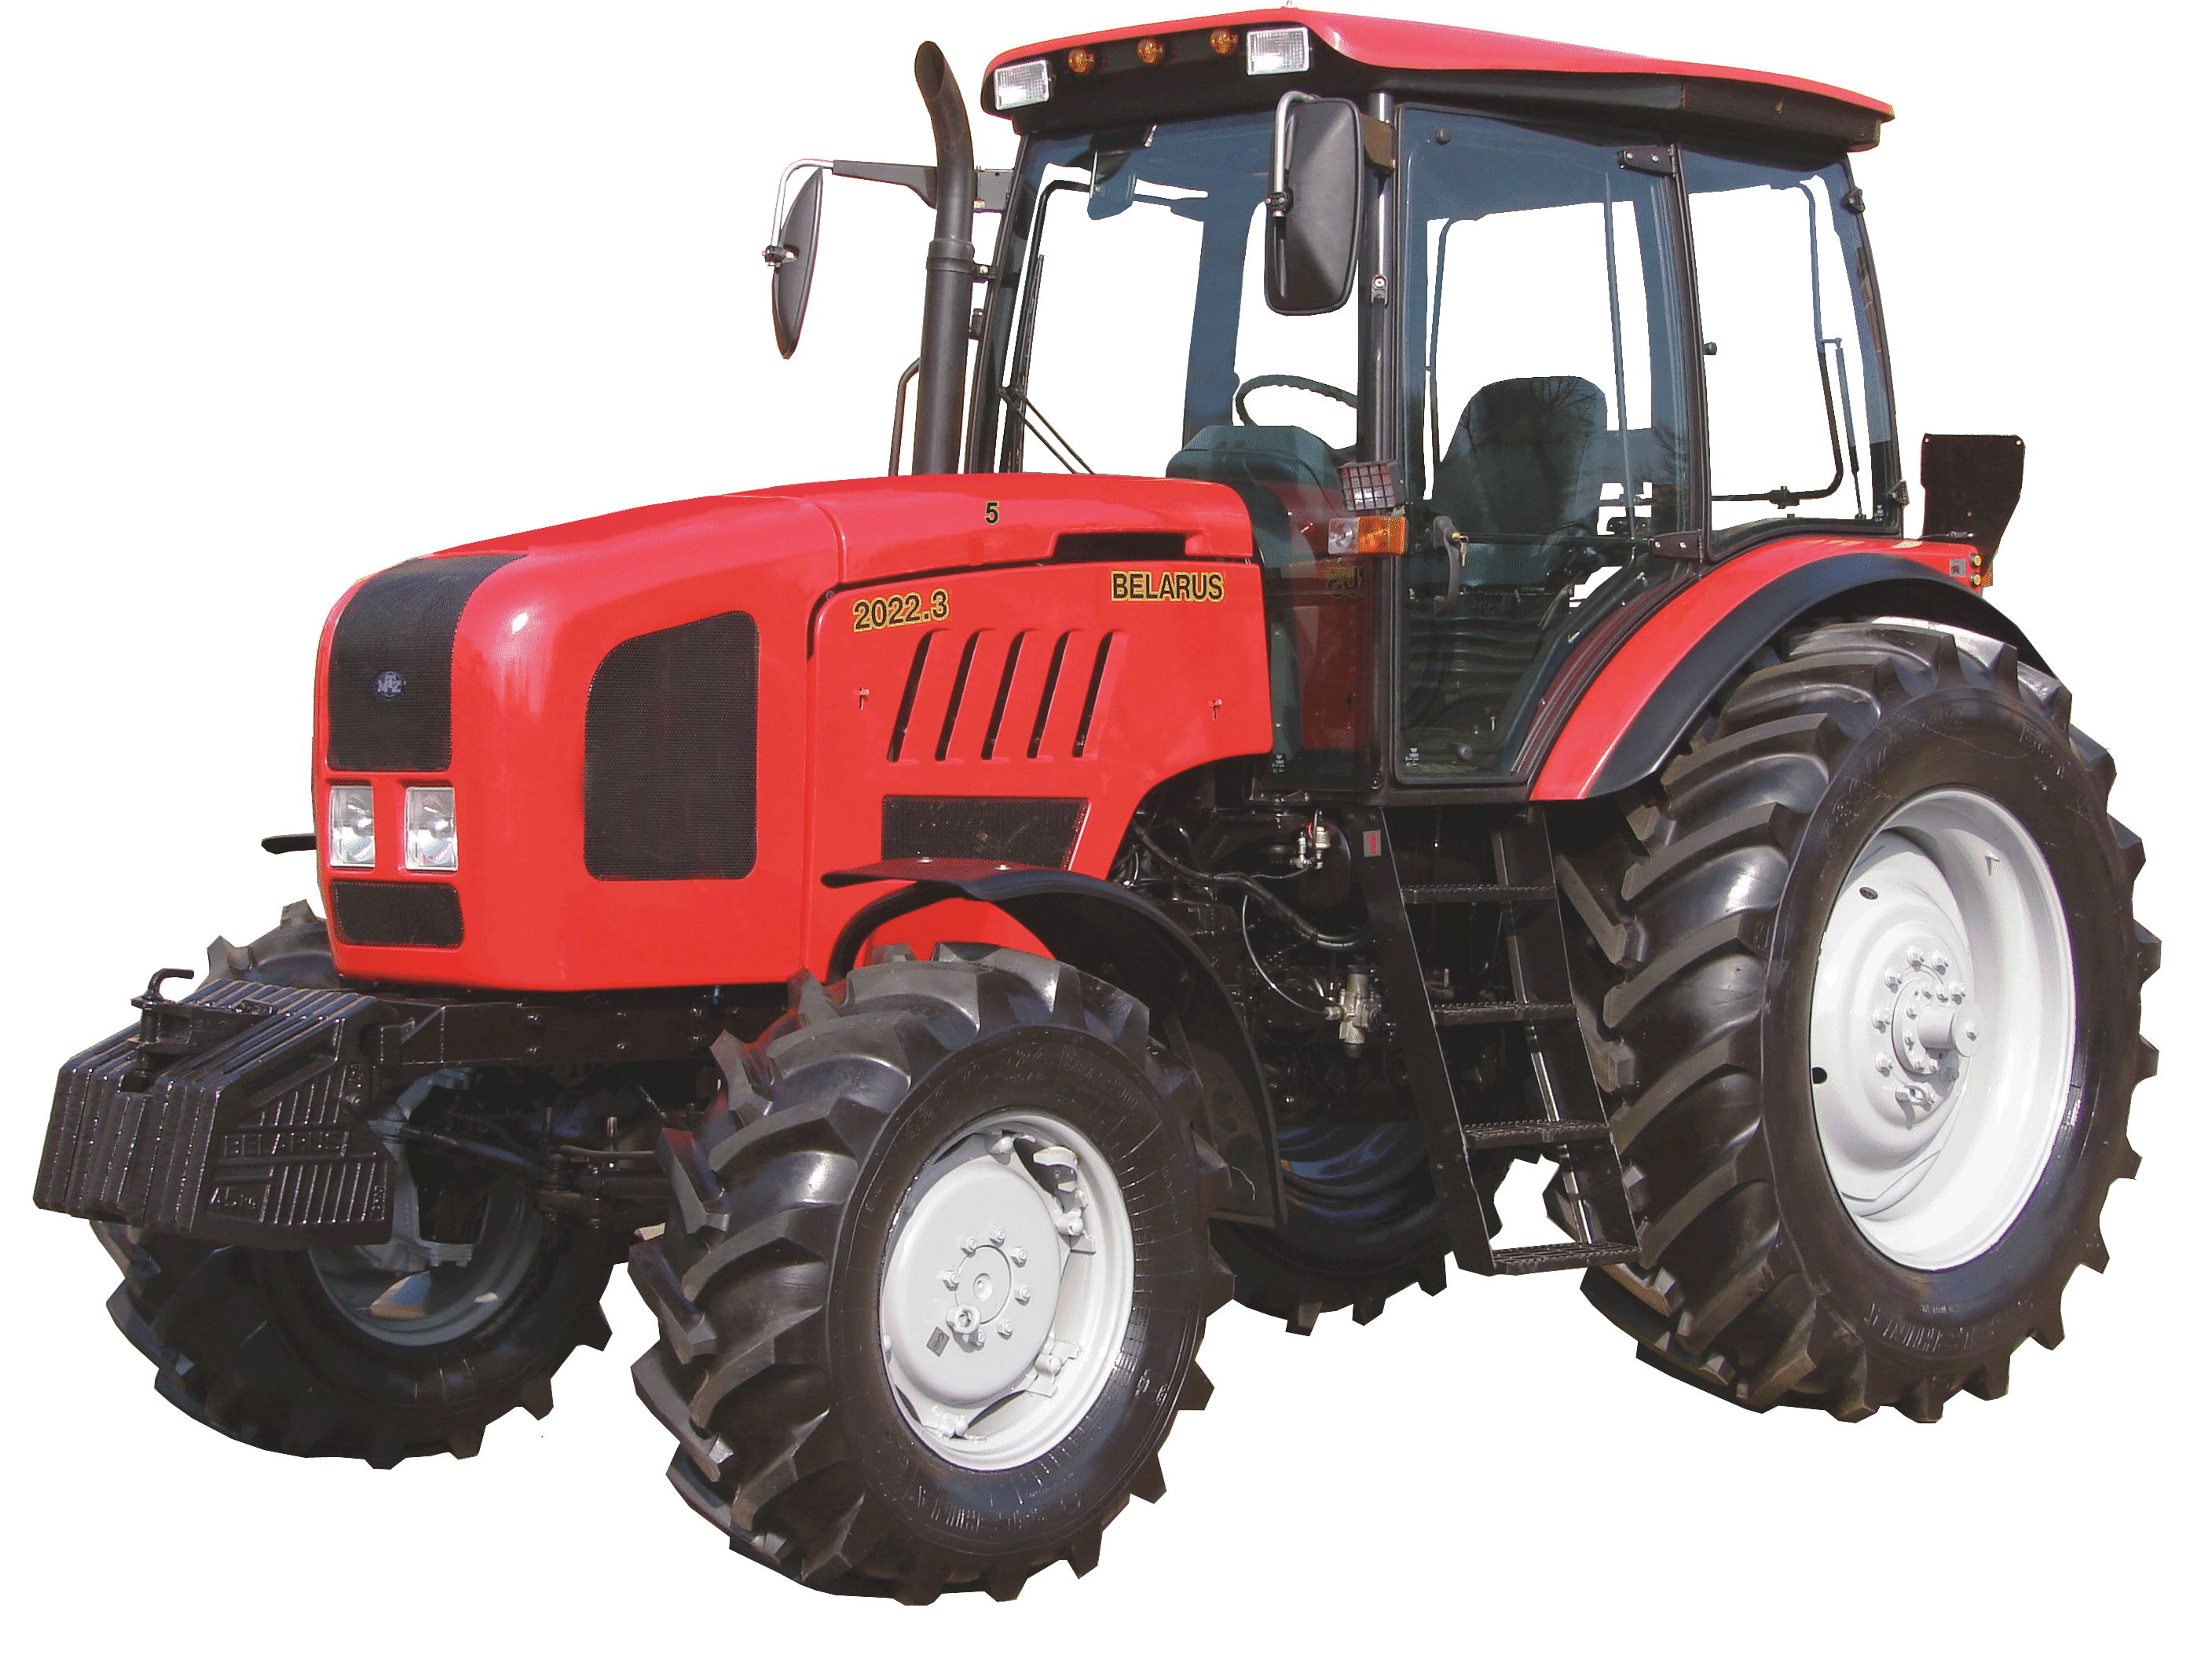 Red Tractor PNG Image.